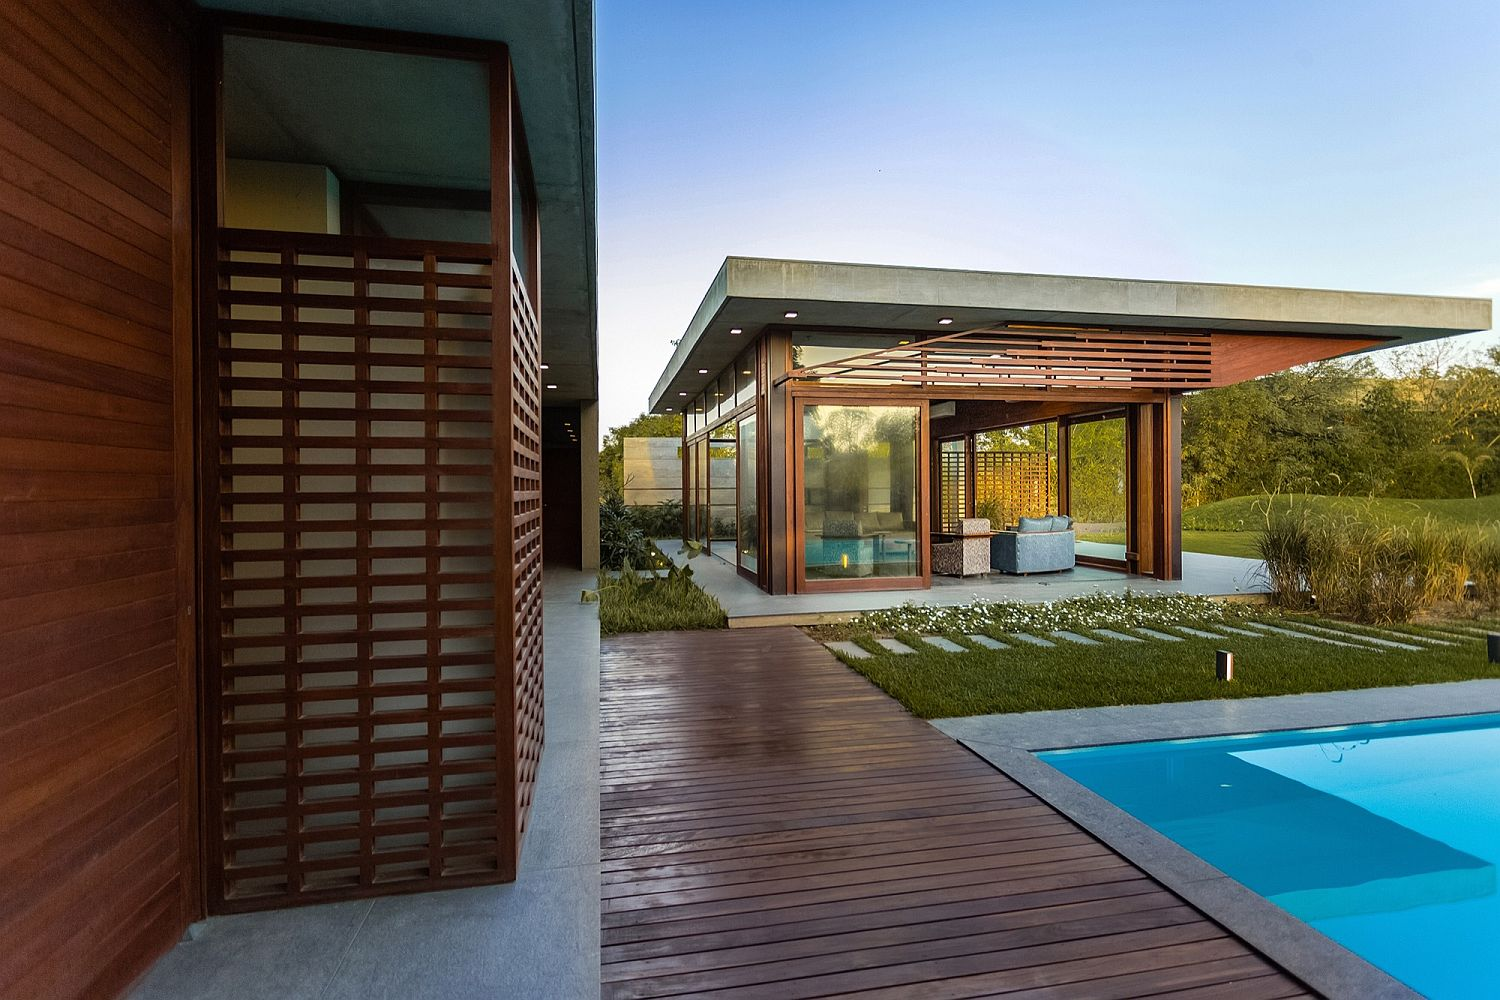 Private wing of the retreat flows into the deck and pool area outside